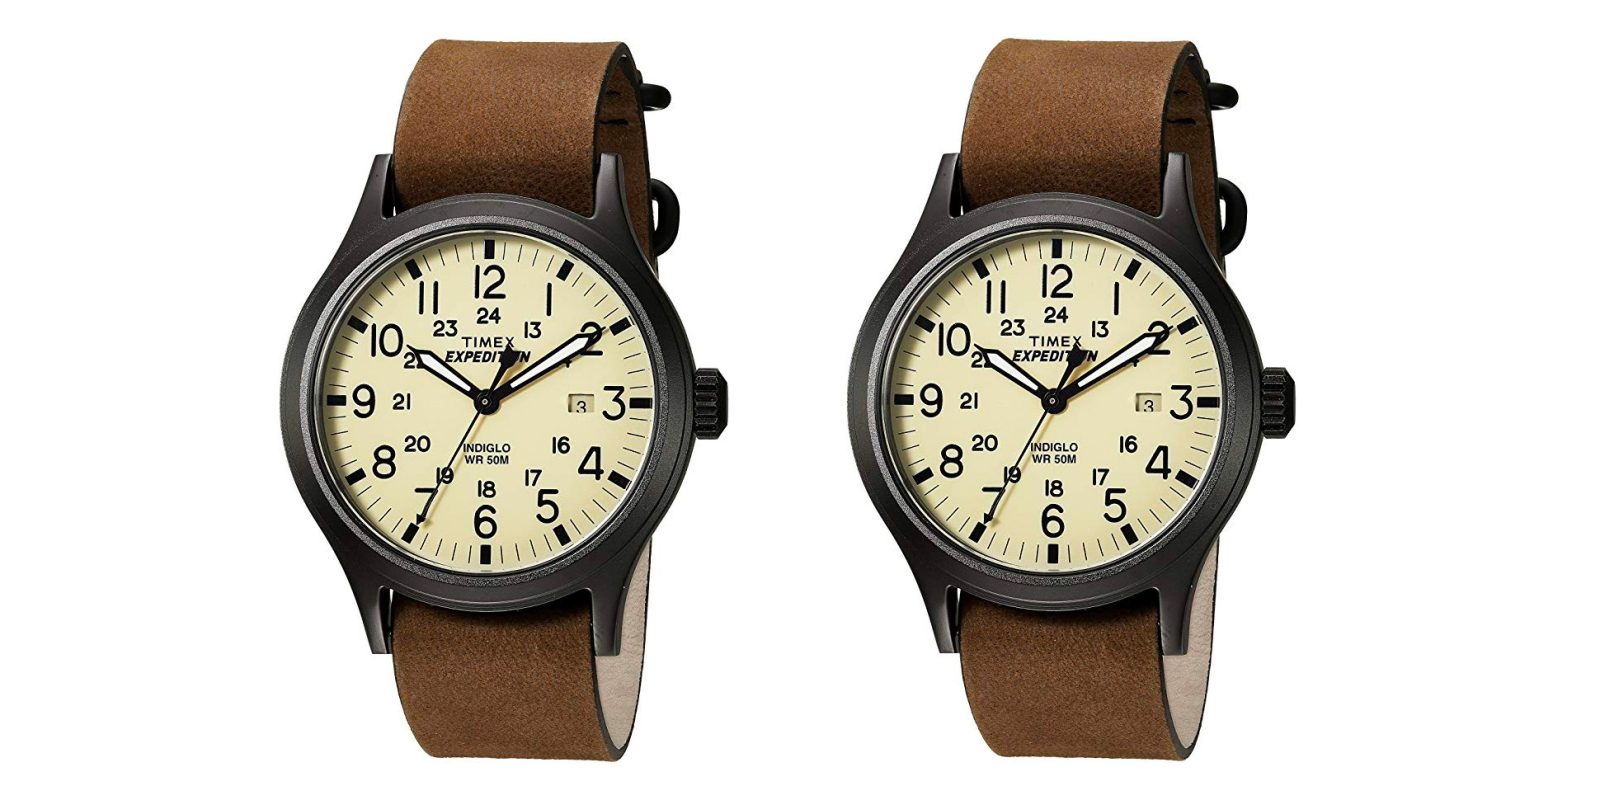 Timex's expedition scout watch drops to $21 Prime shipped (Reg. $35)